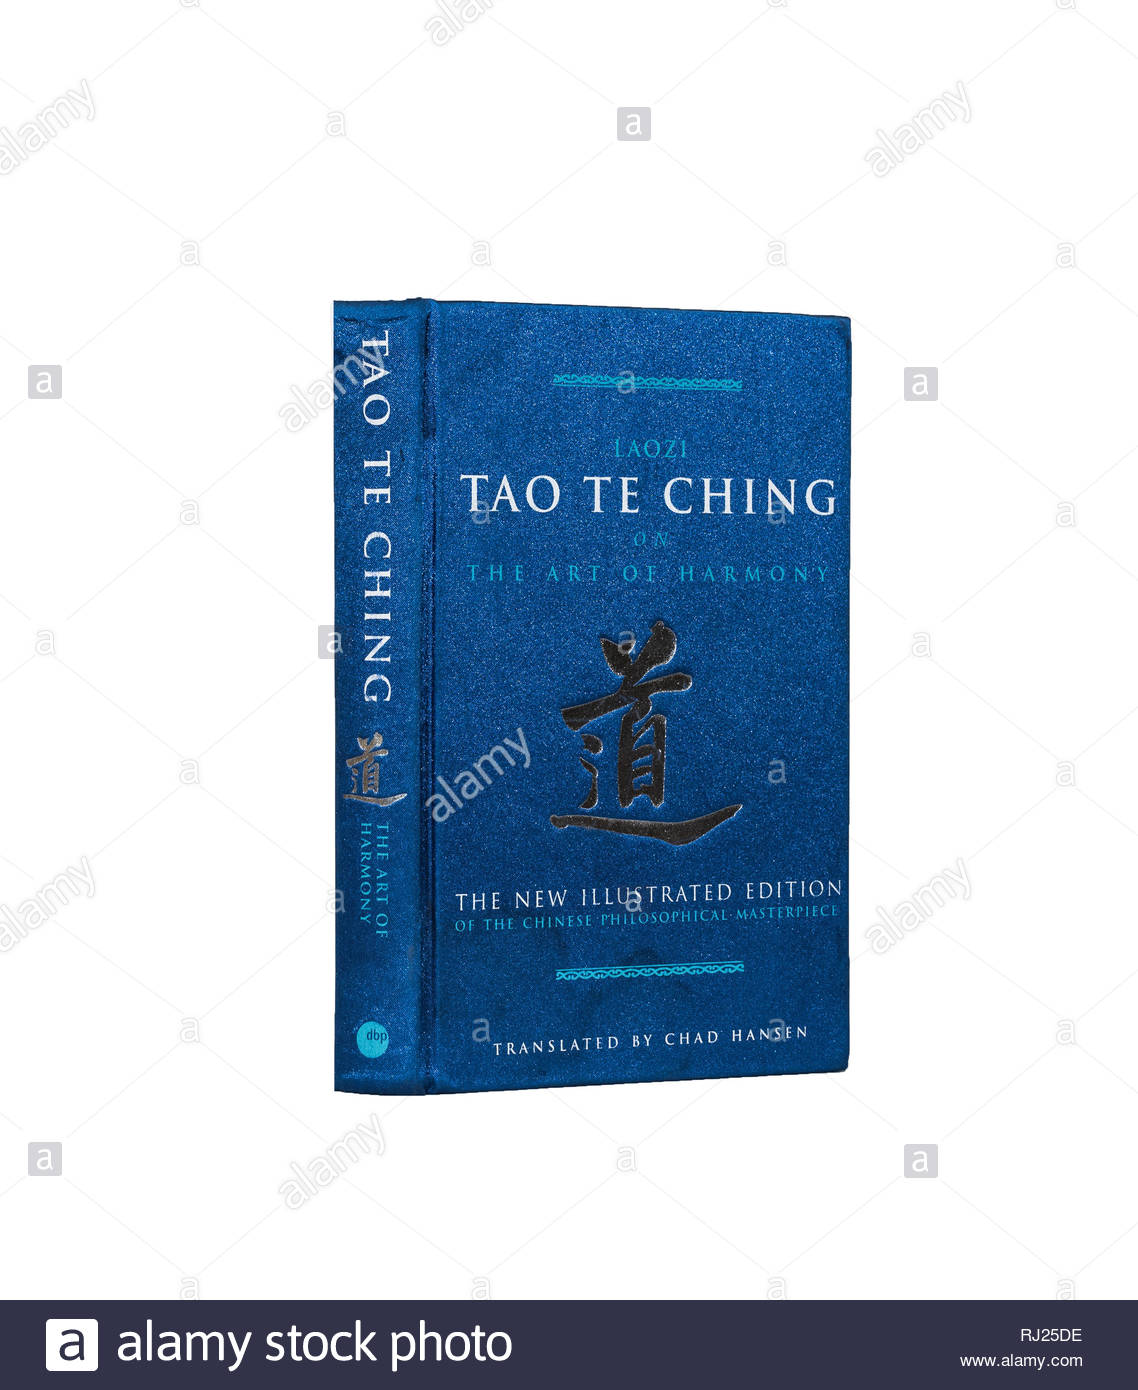 Book Image: Tao Te Ching, Laozi, translated by Chad Hansen.  Isolated on pure white background. - Stock Image